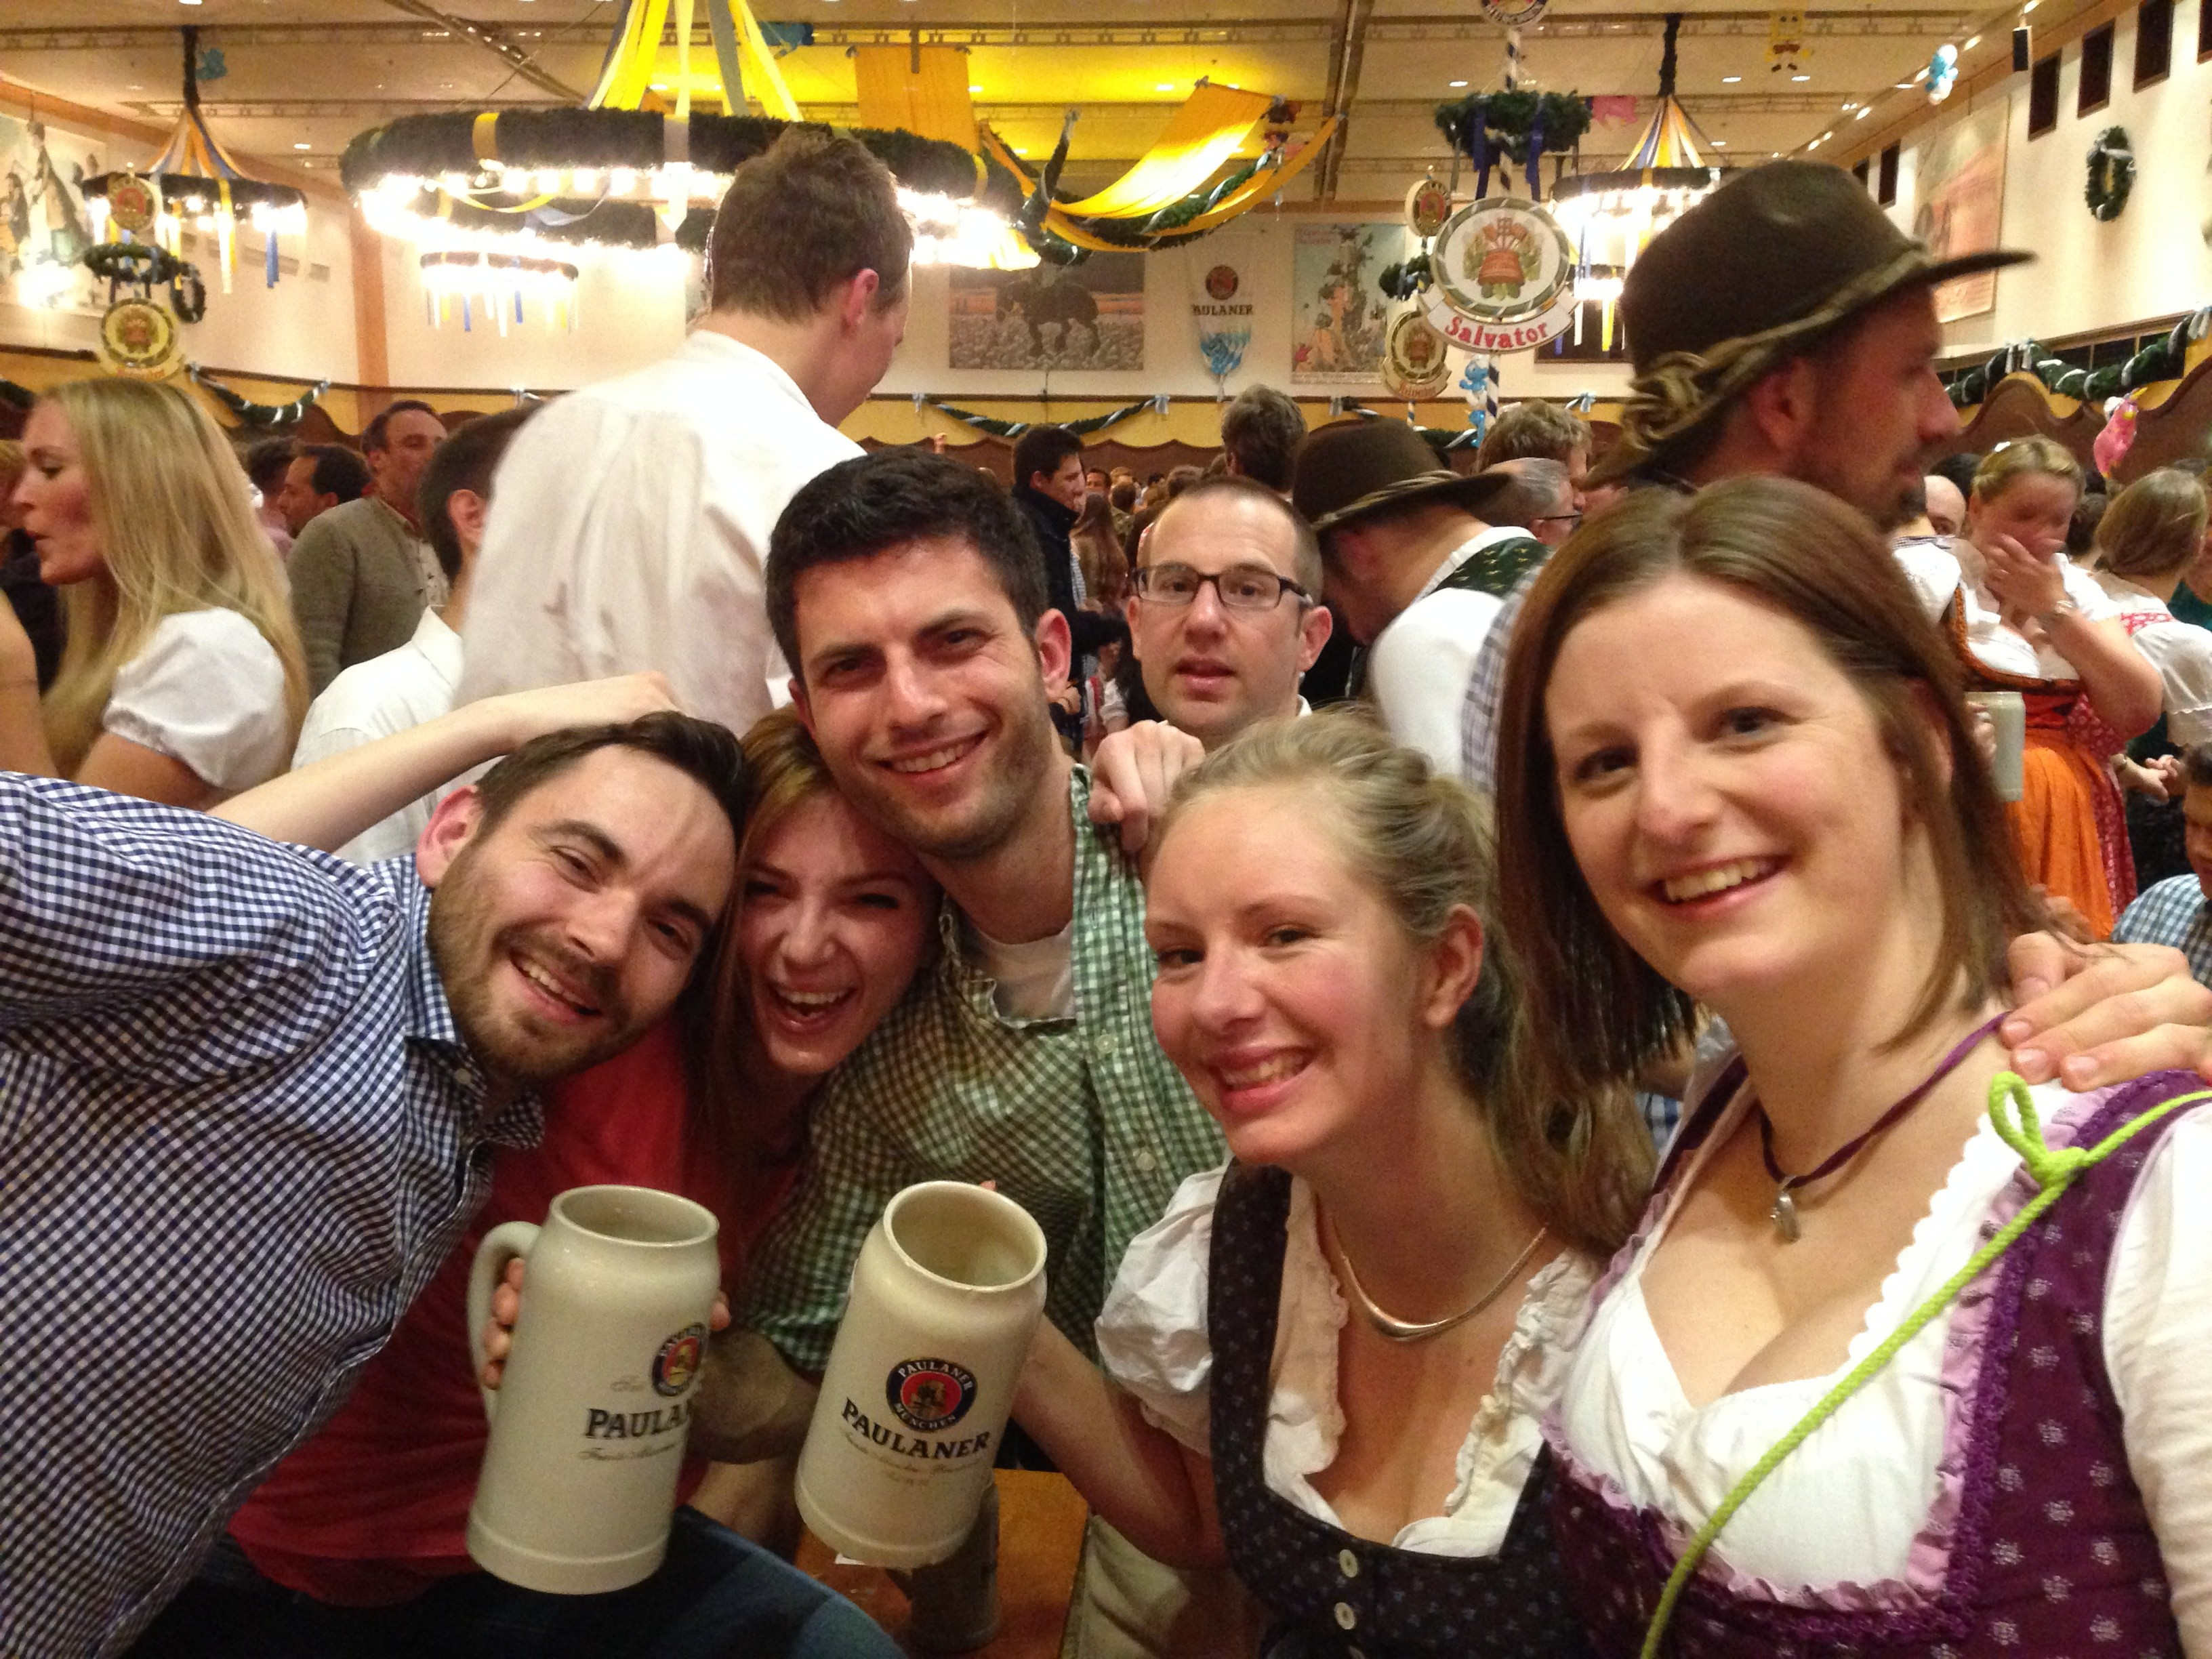 Starkbierfest. Bavarians can throw a hell of a party (with great beer, no less)!